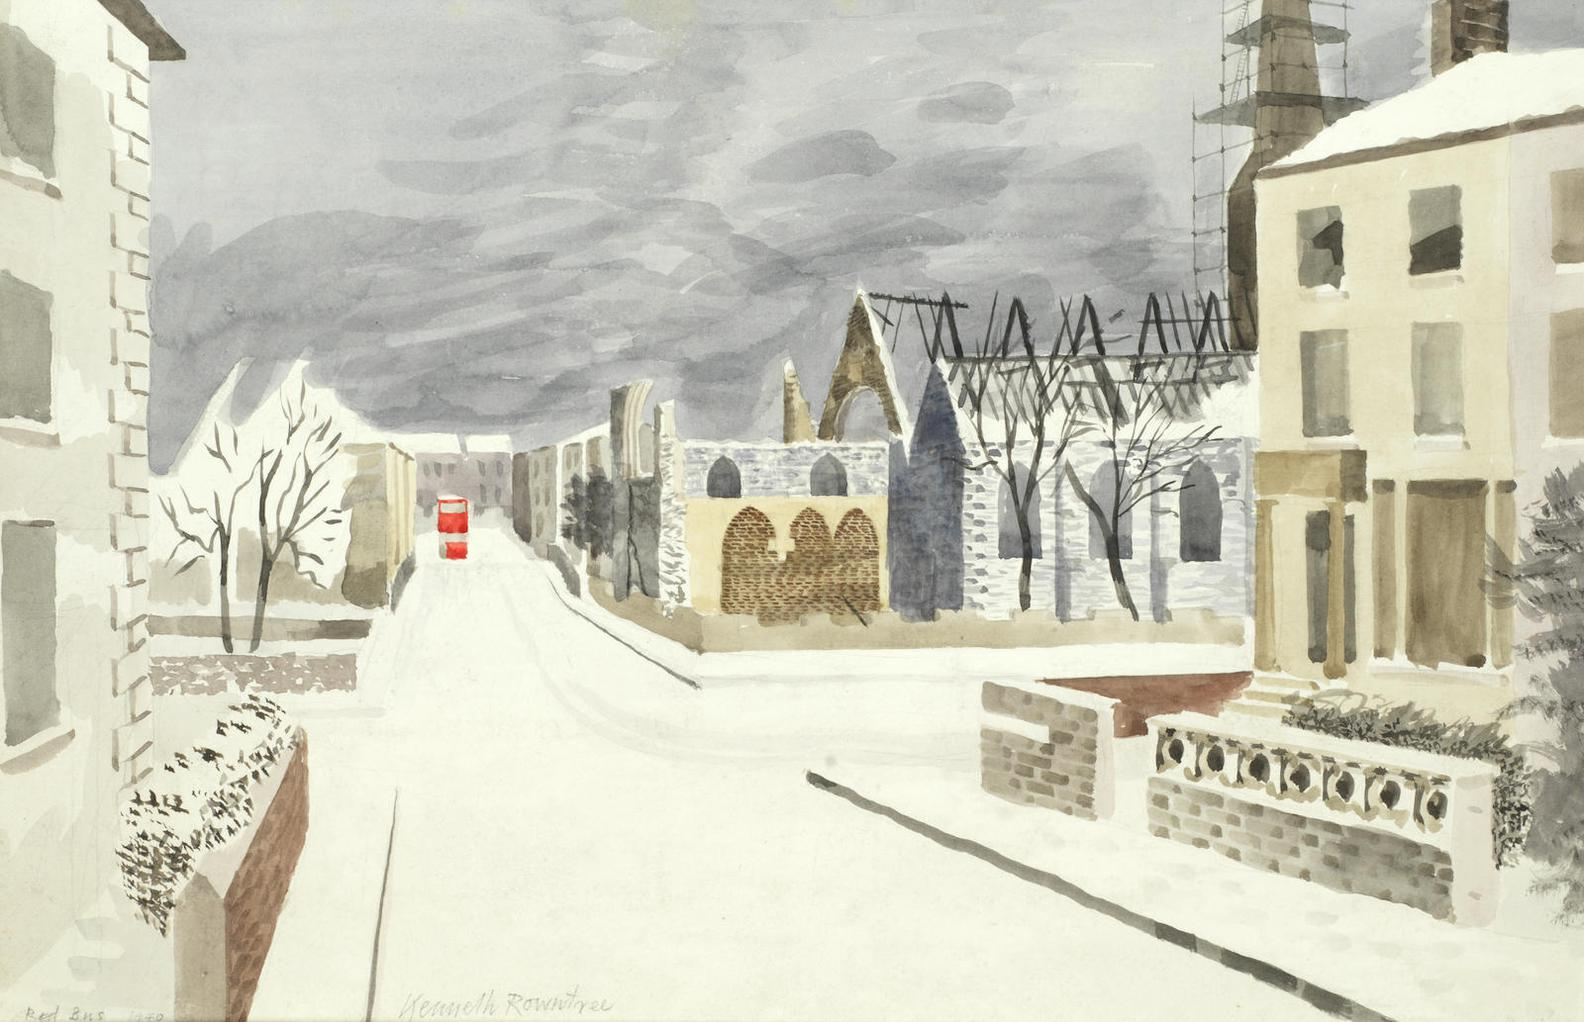 Kenneth Rowntree - Red Bus-1940